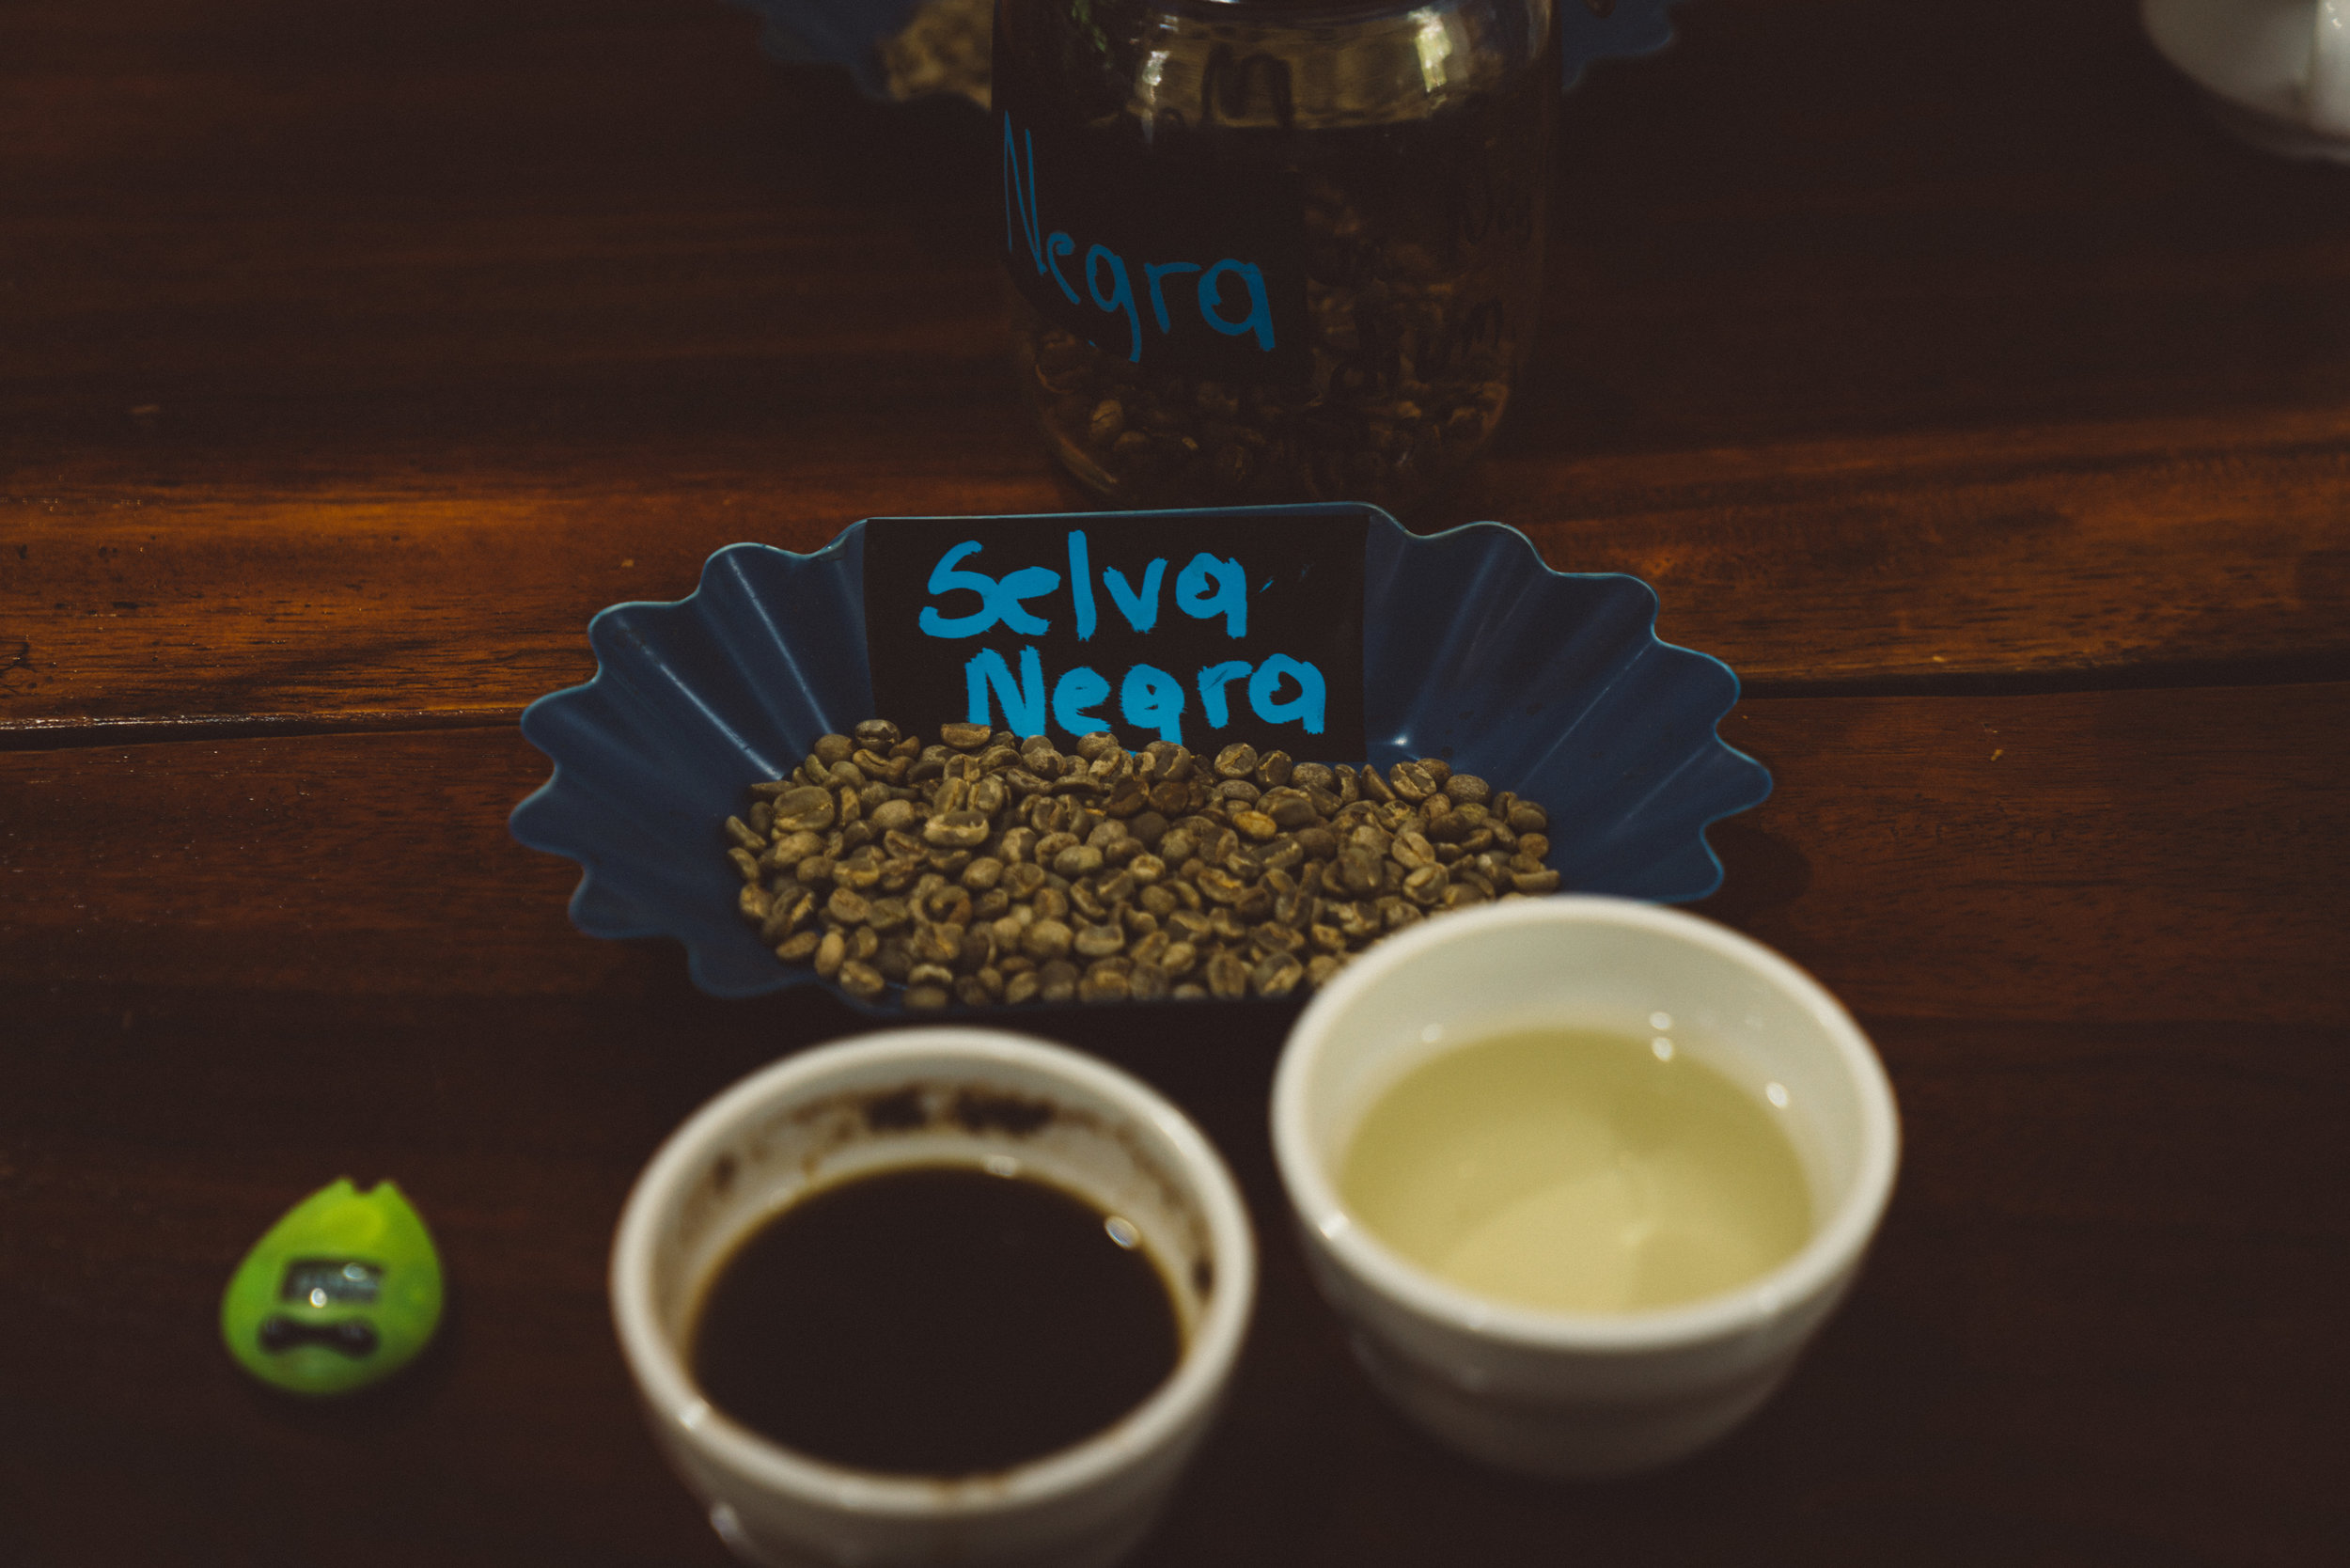 The Selva Negra coffee, with strong citrus notes due to the fact the coffee plants are grown amongst orange and lemon trees.